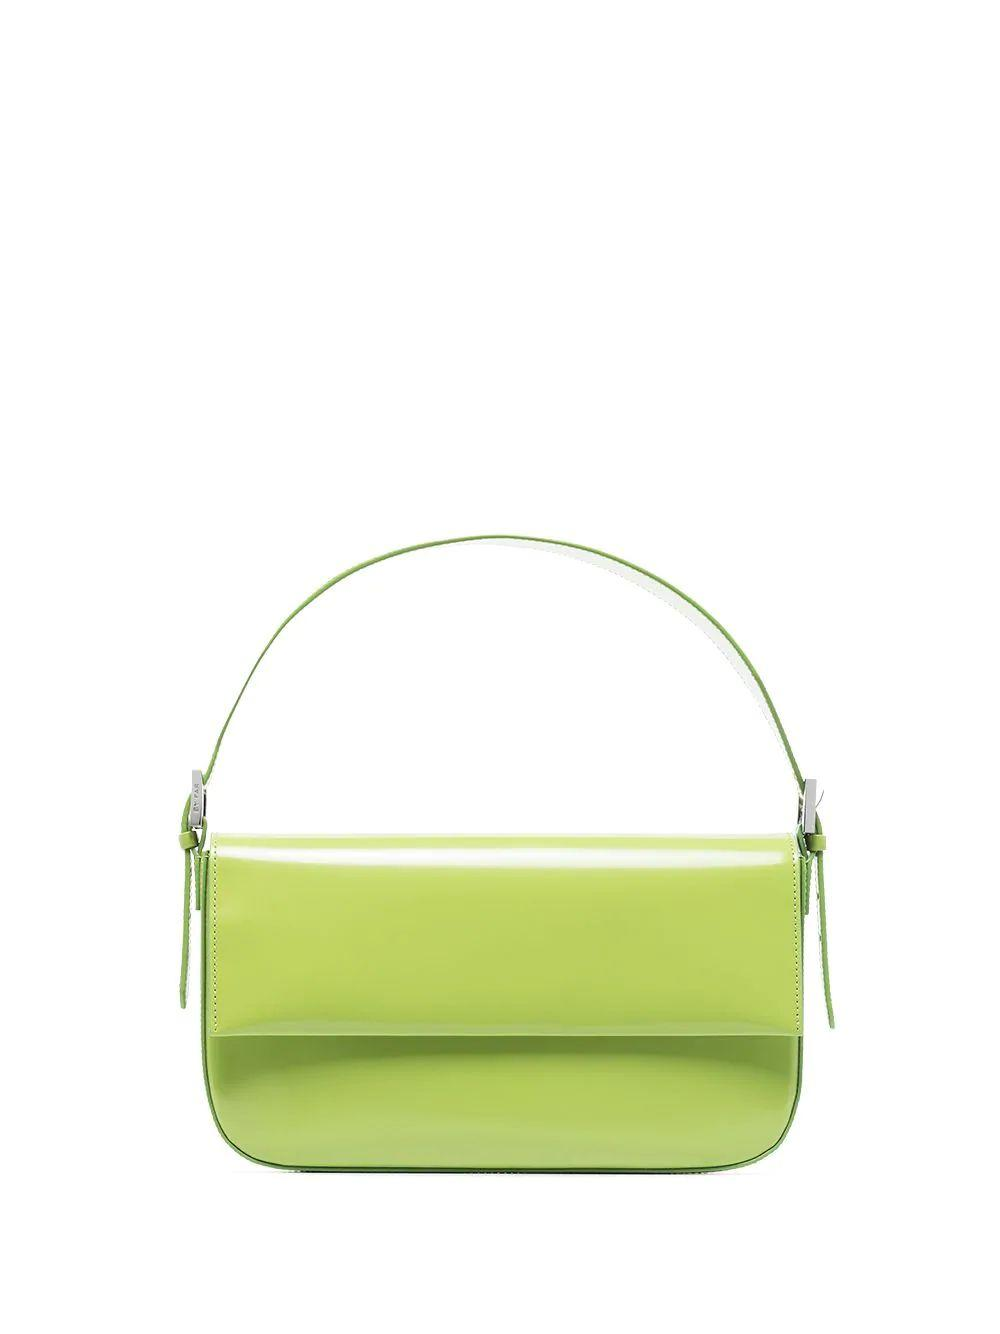 Manu Semi-Patent Shoulder Bag